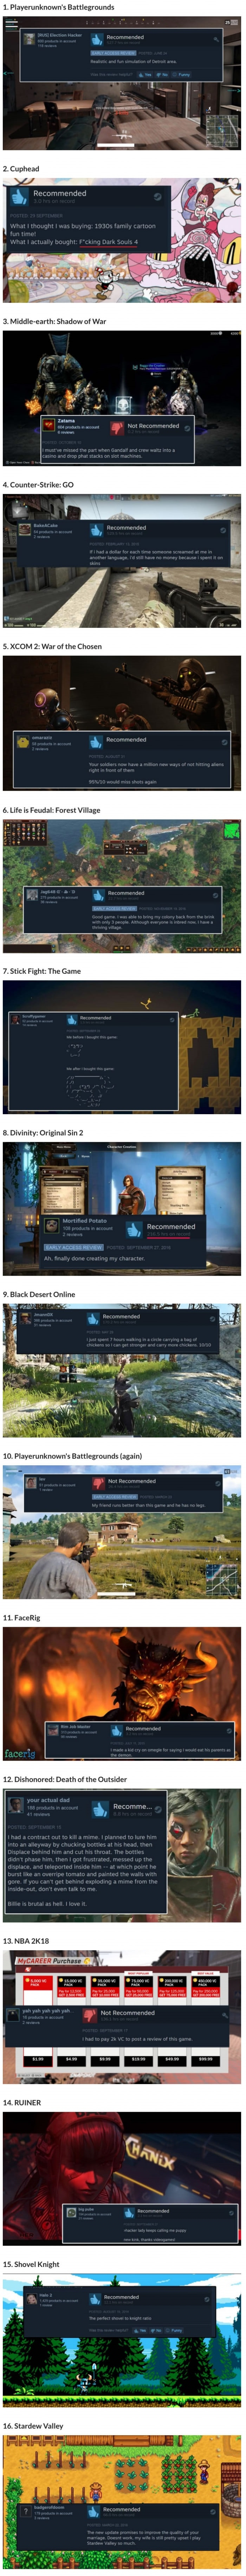 Steam game reviews that'll brighten your day